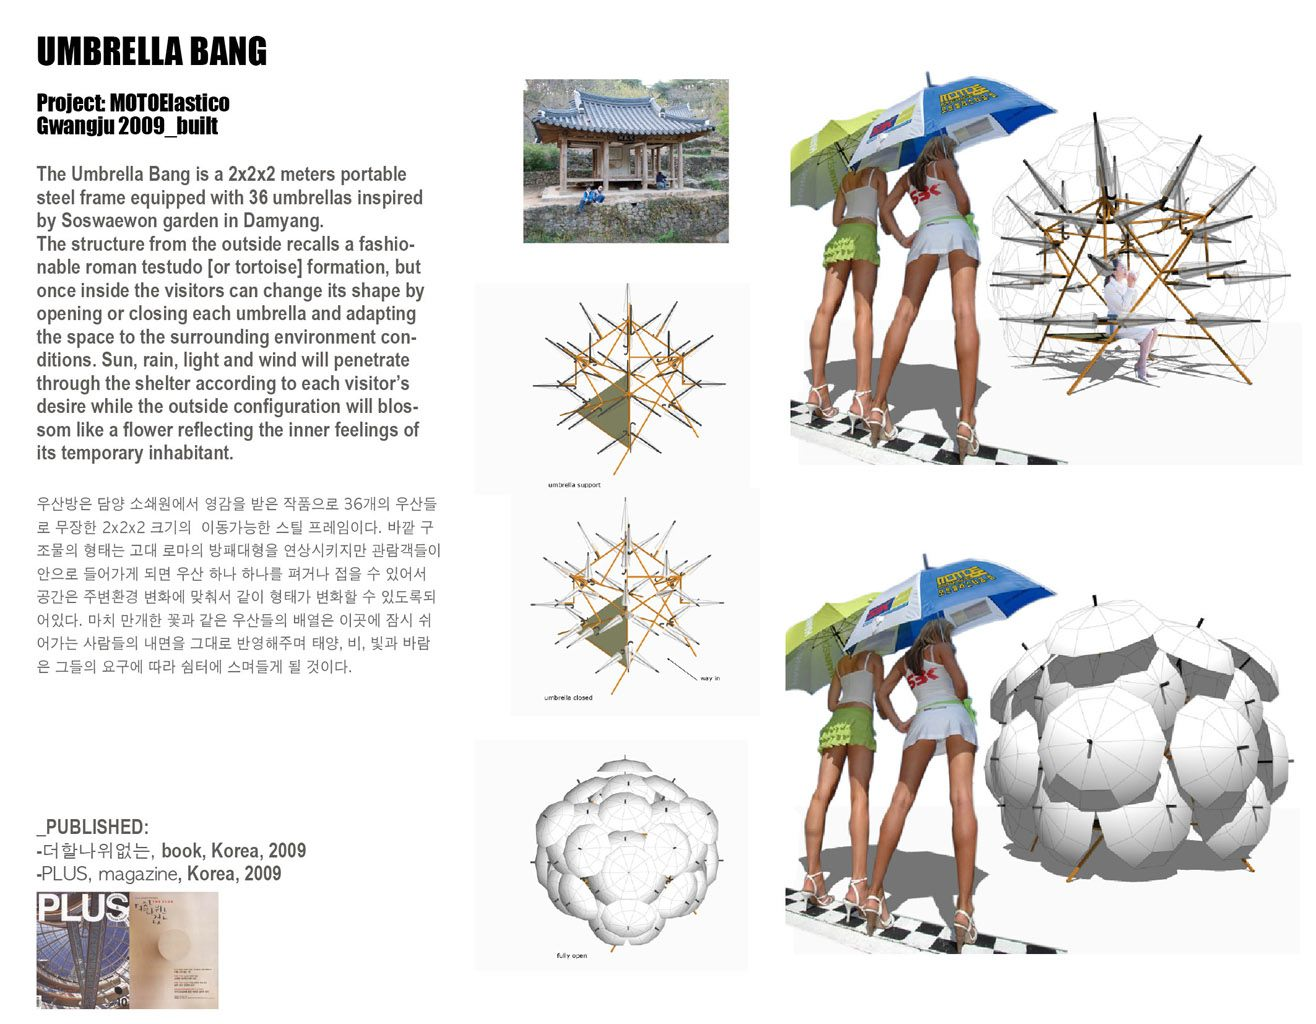 01 Umbrella Bang cover.jpg